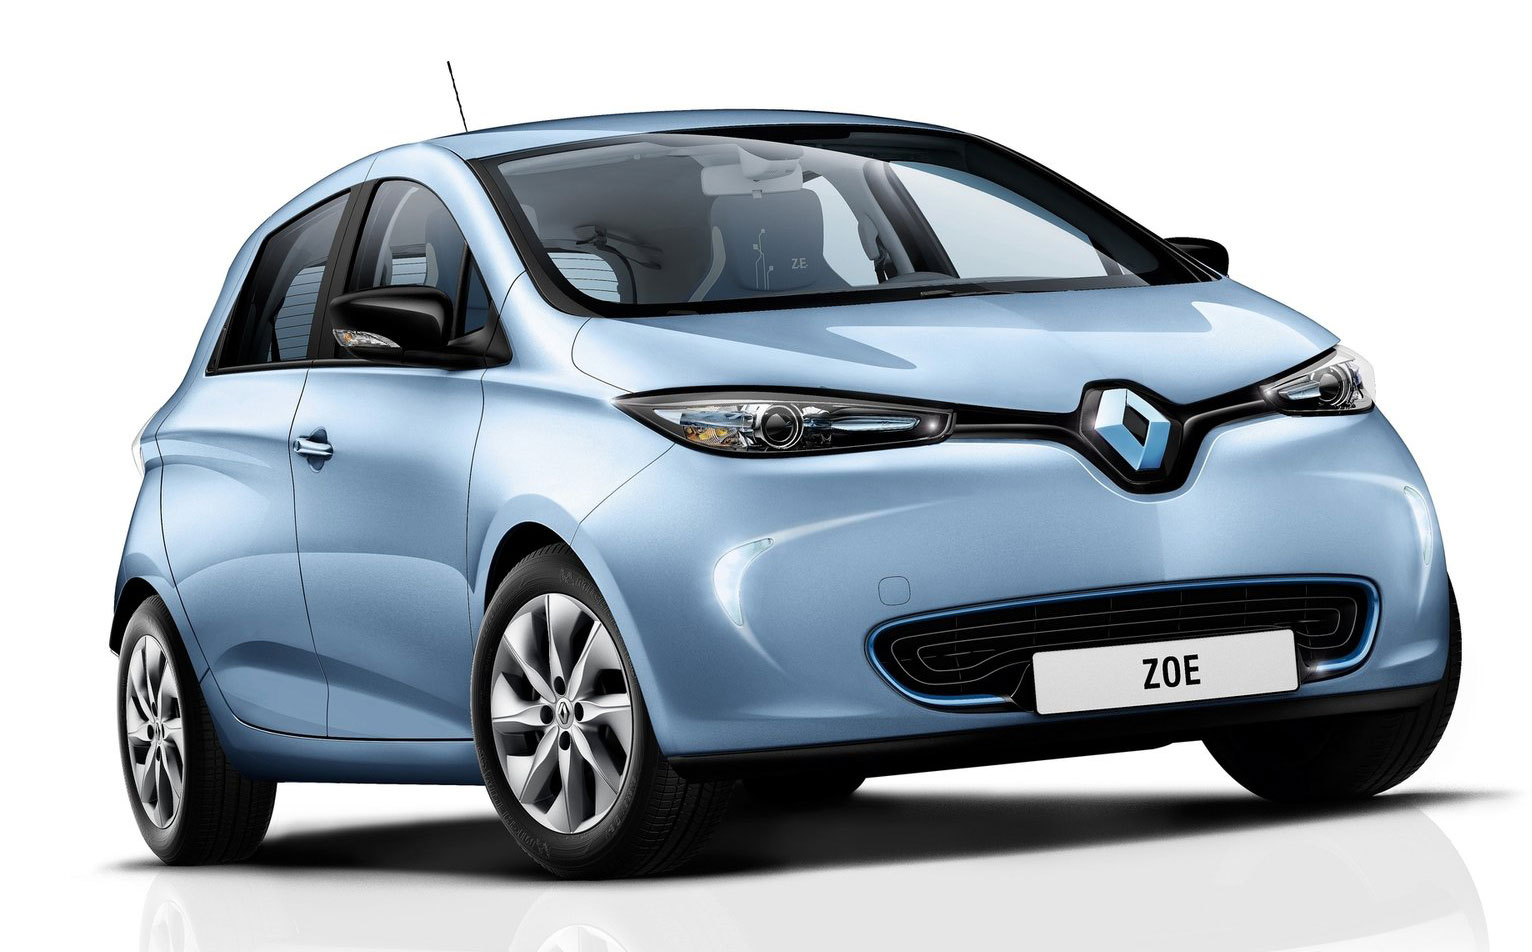 renault zoe electric car launched 210 km nedc range image 91648